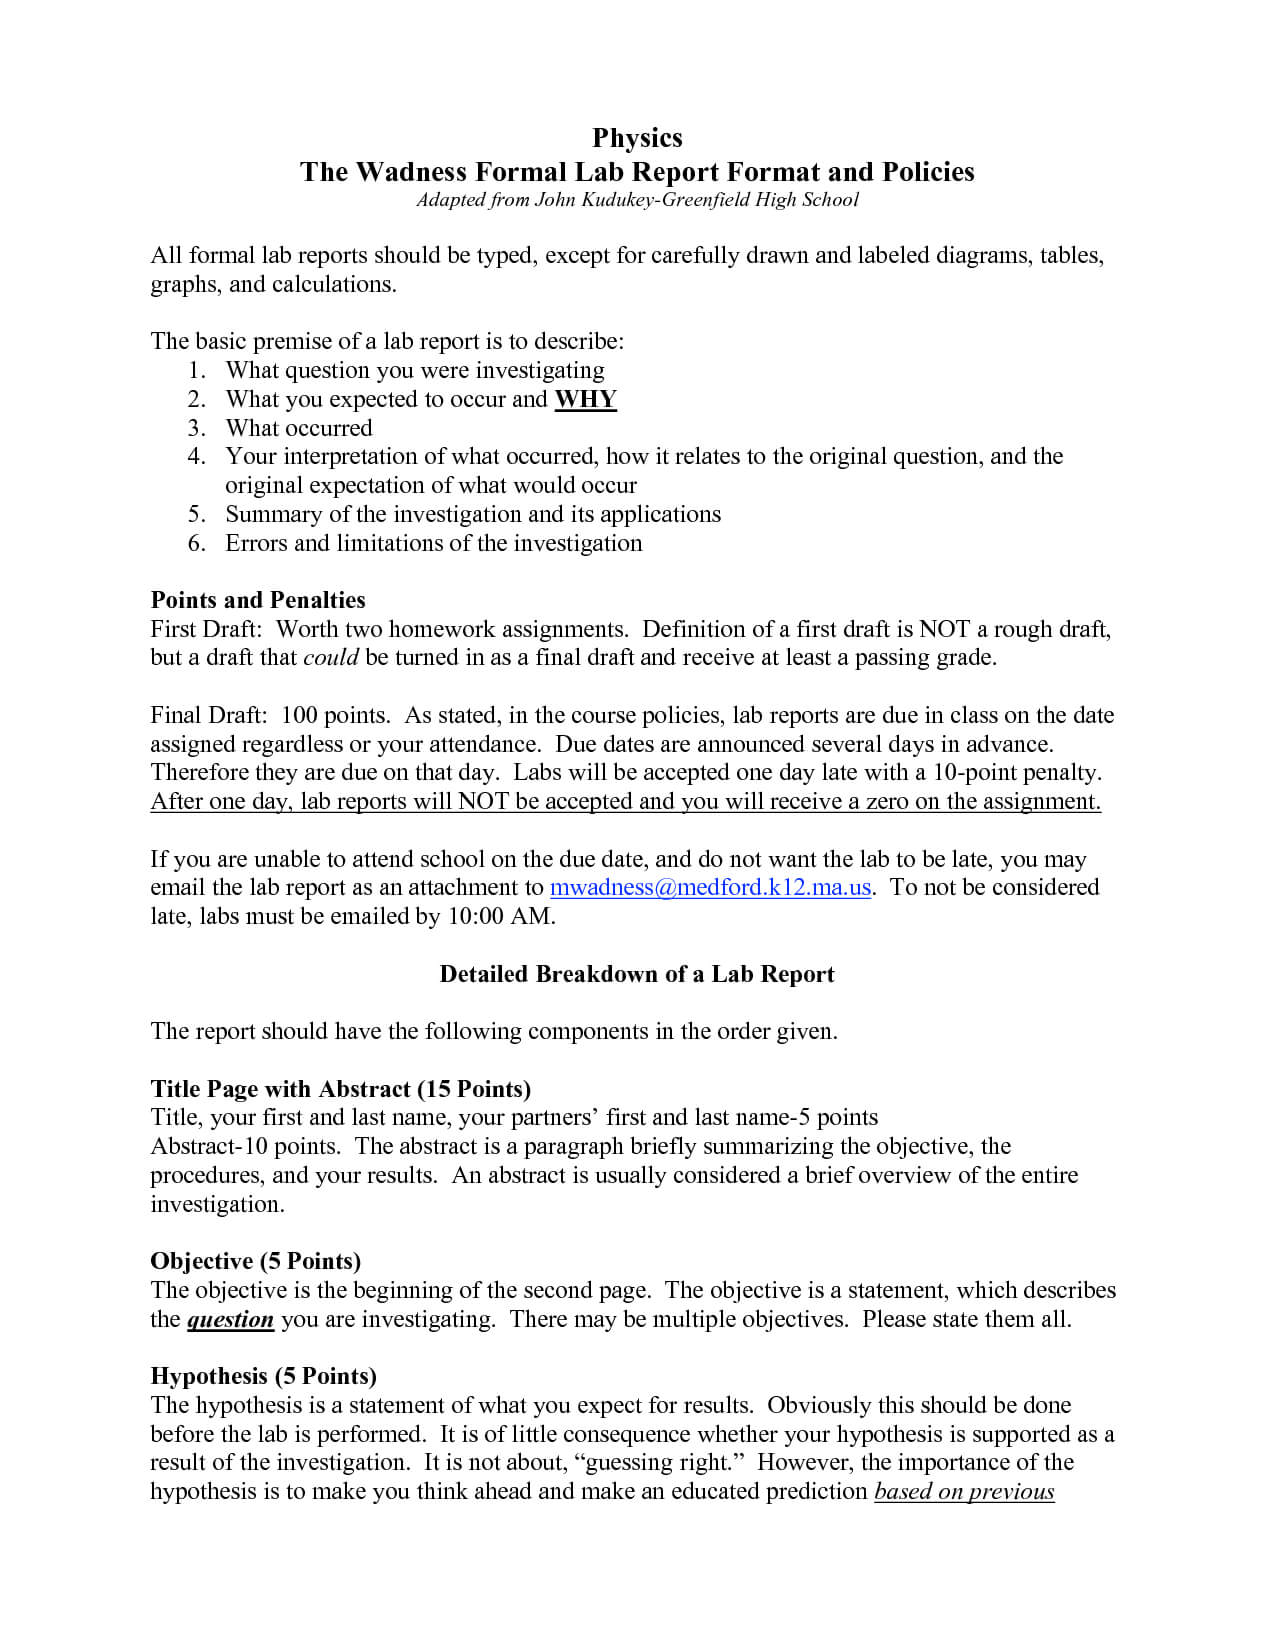 Formal Lab Report Template Physics : Biological Science With Physics Lab Report Template